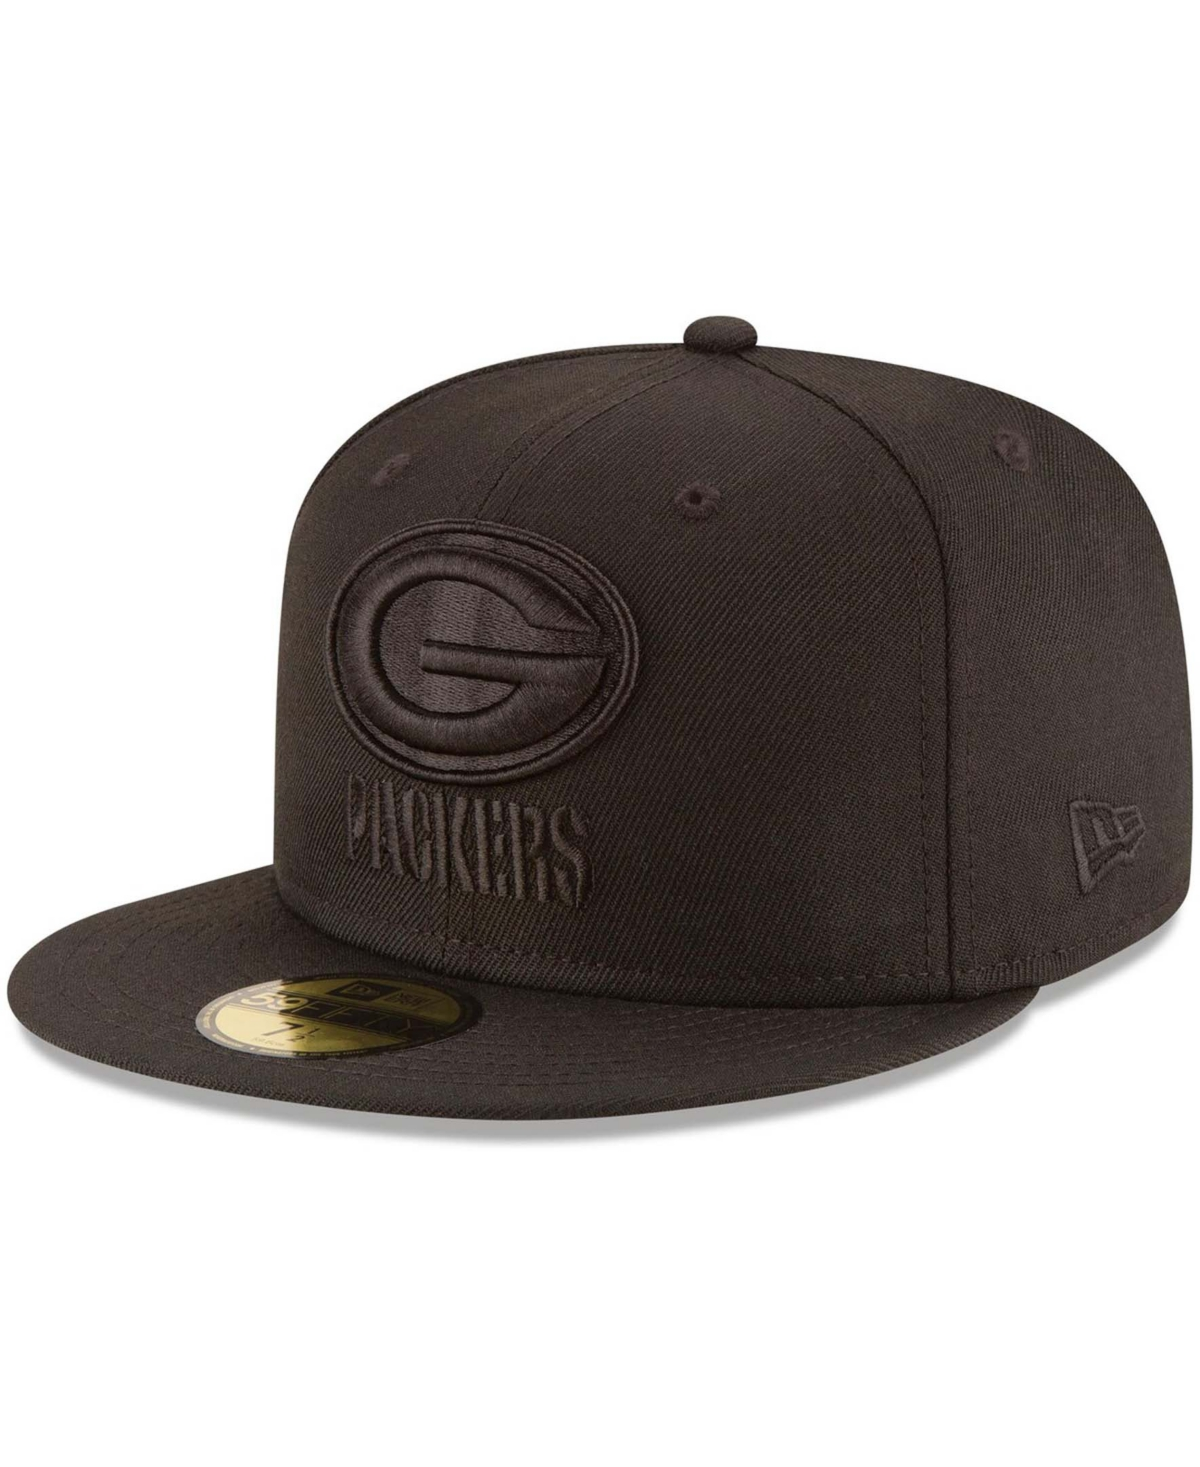 Men's Green Bay Packers Black on Black 59FIFTY Fitted Hat